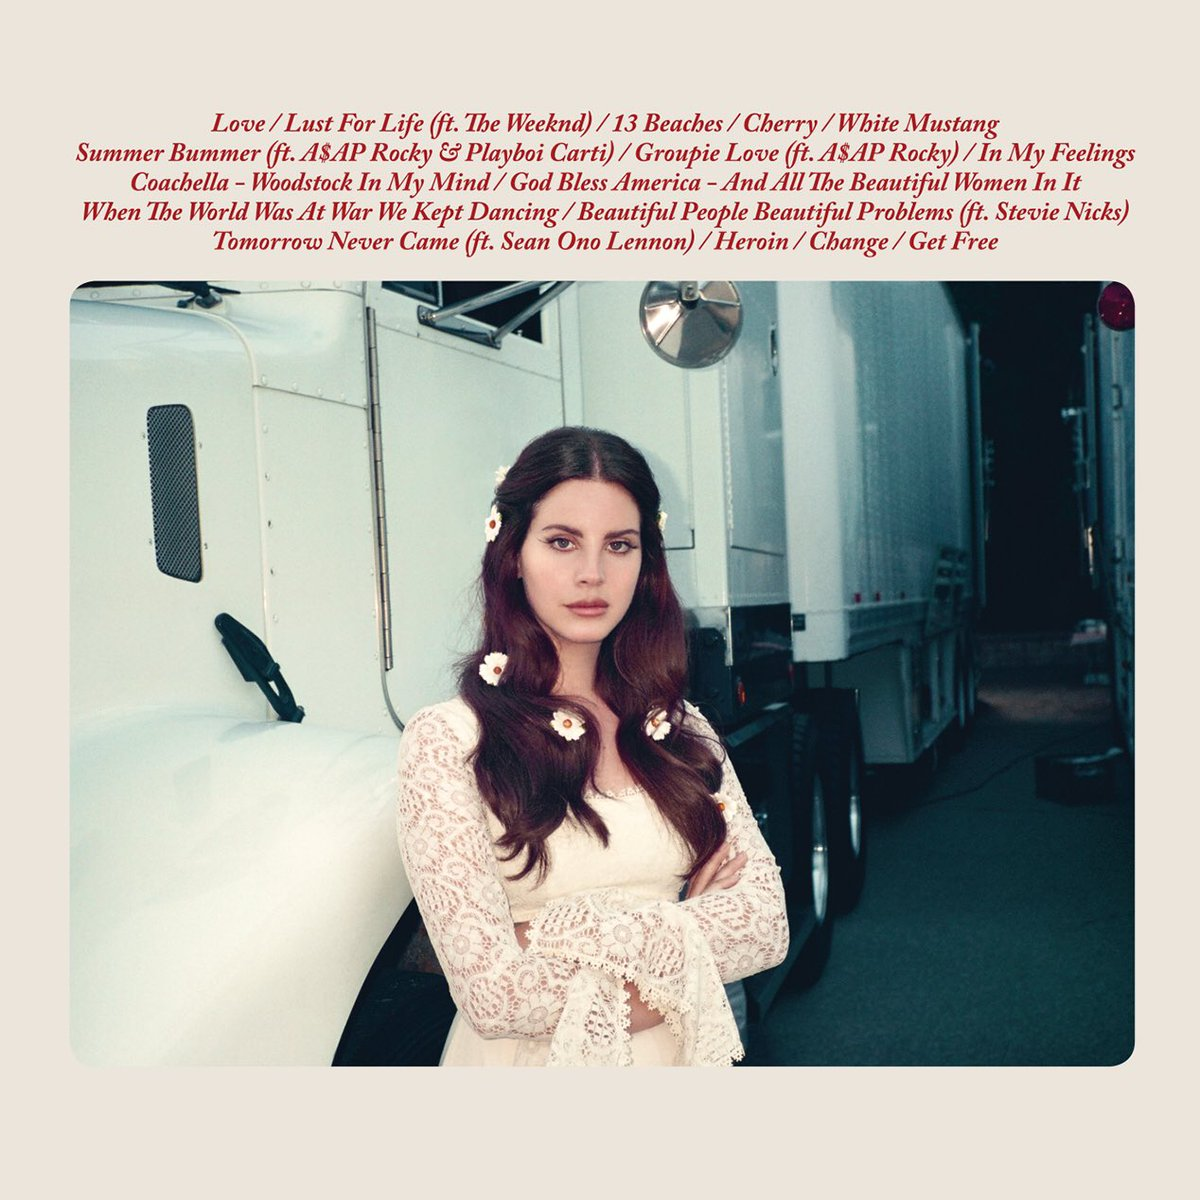 Lust for Life (back)